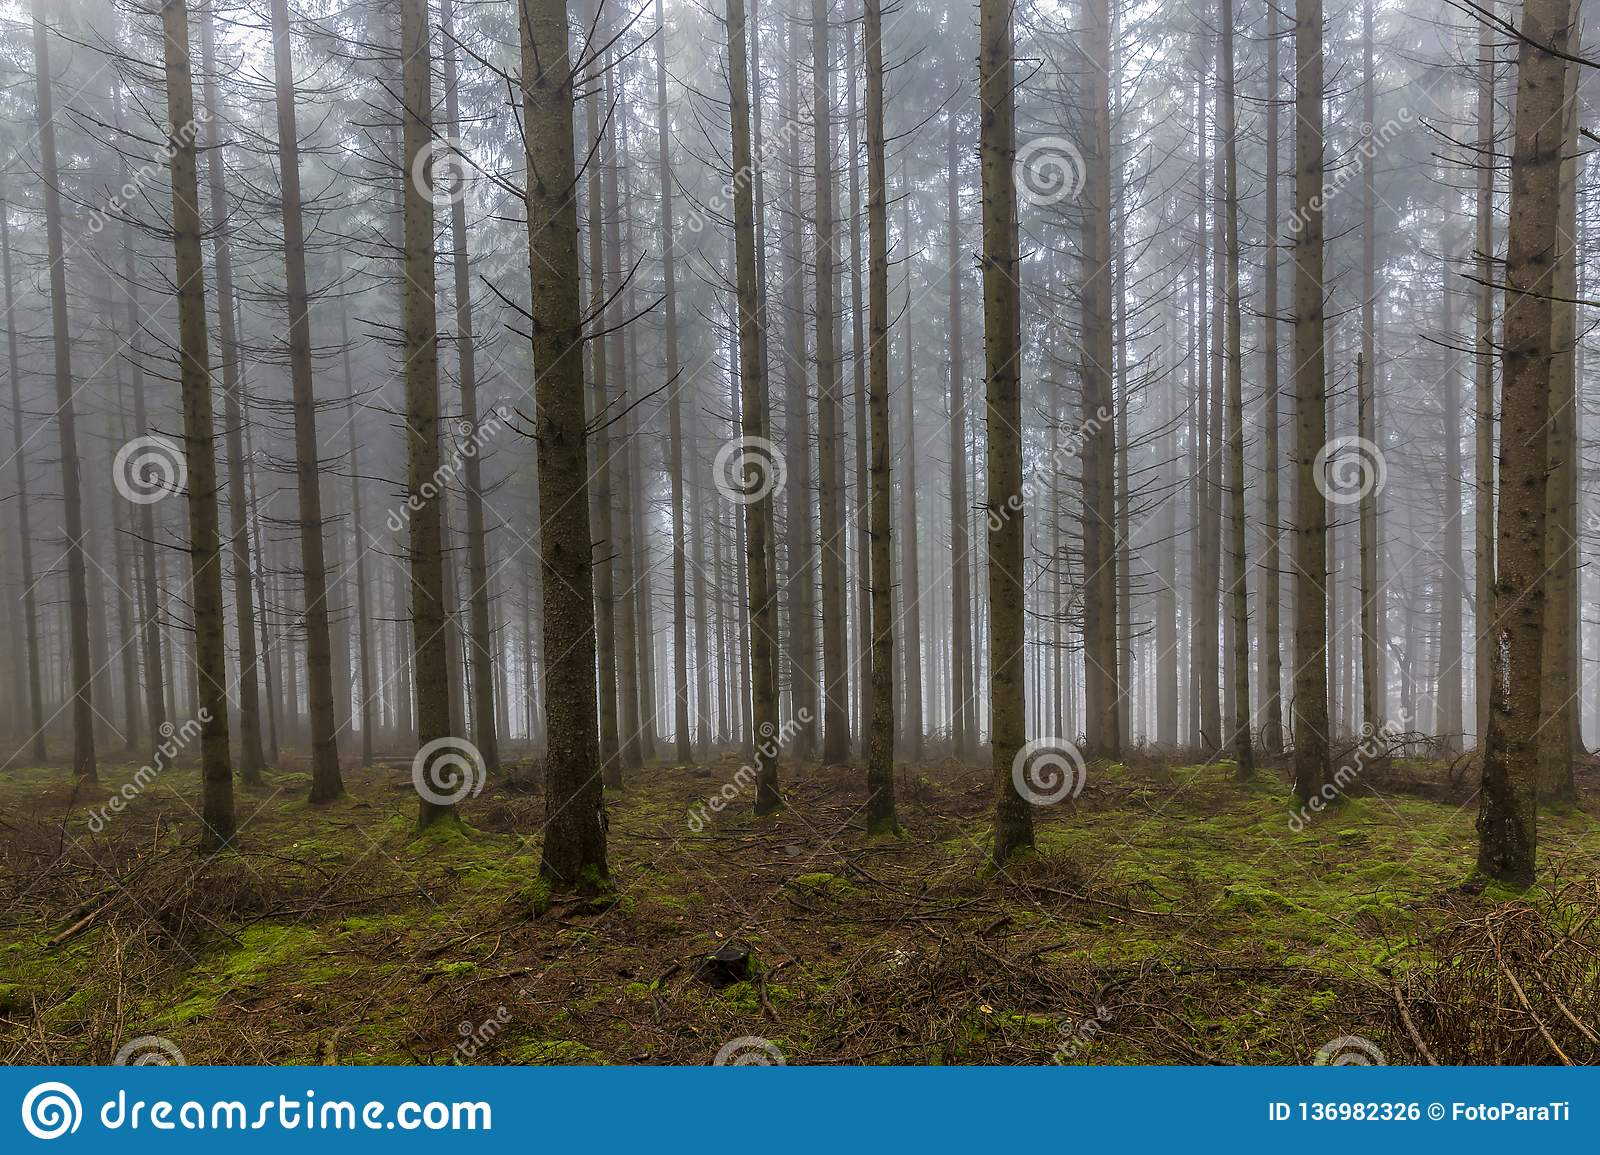 Image of tall pine trees in the forest with moss and branches on the ground with a lot of fog